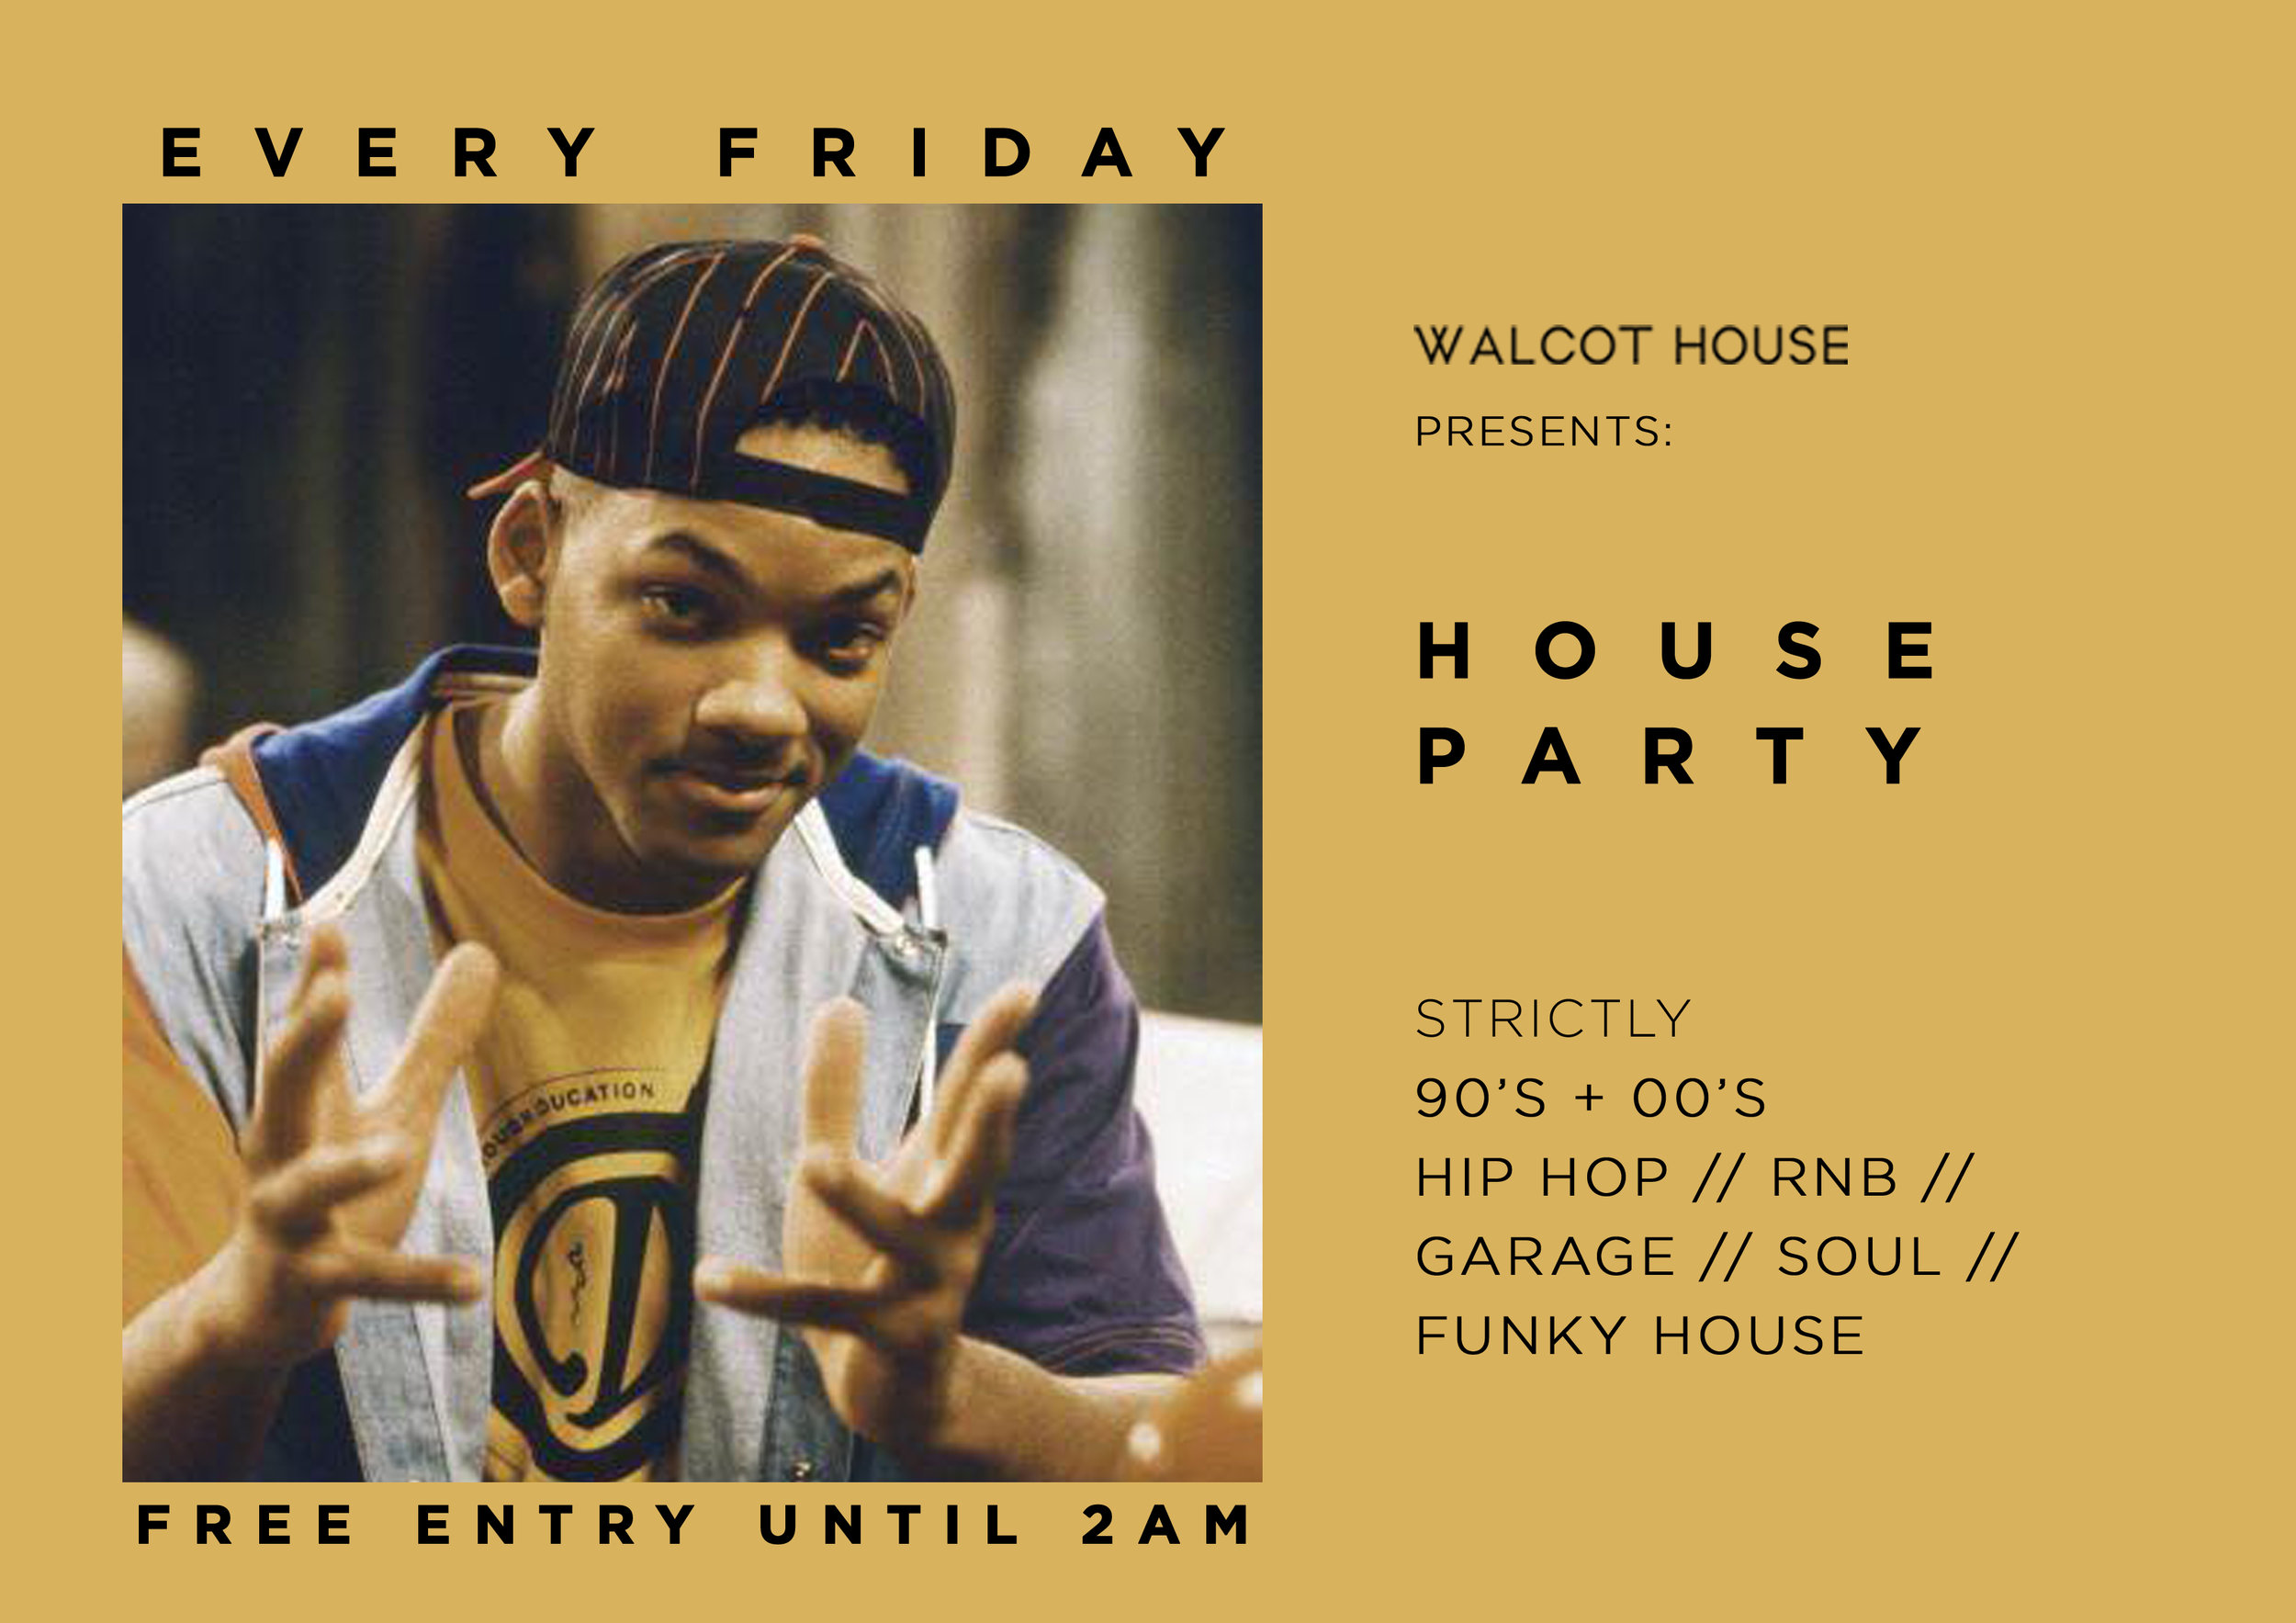 HOUSE PARTY FLYER will.jpg